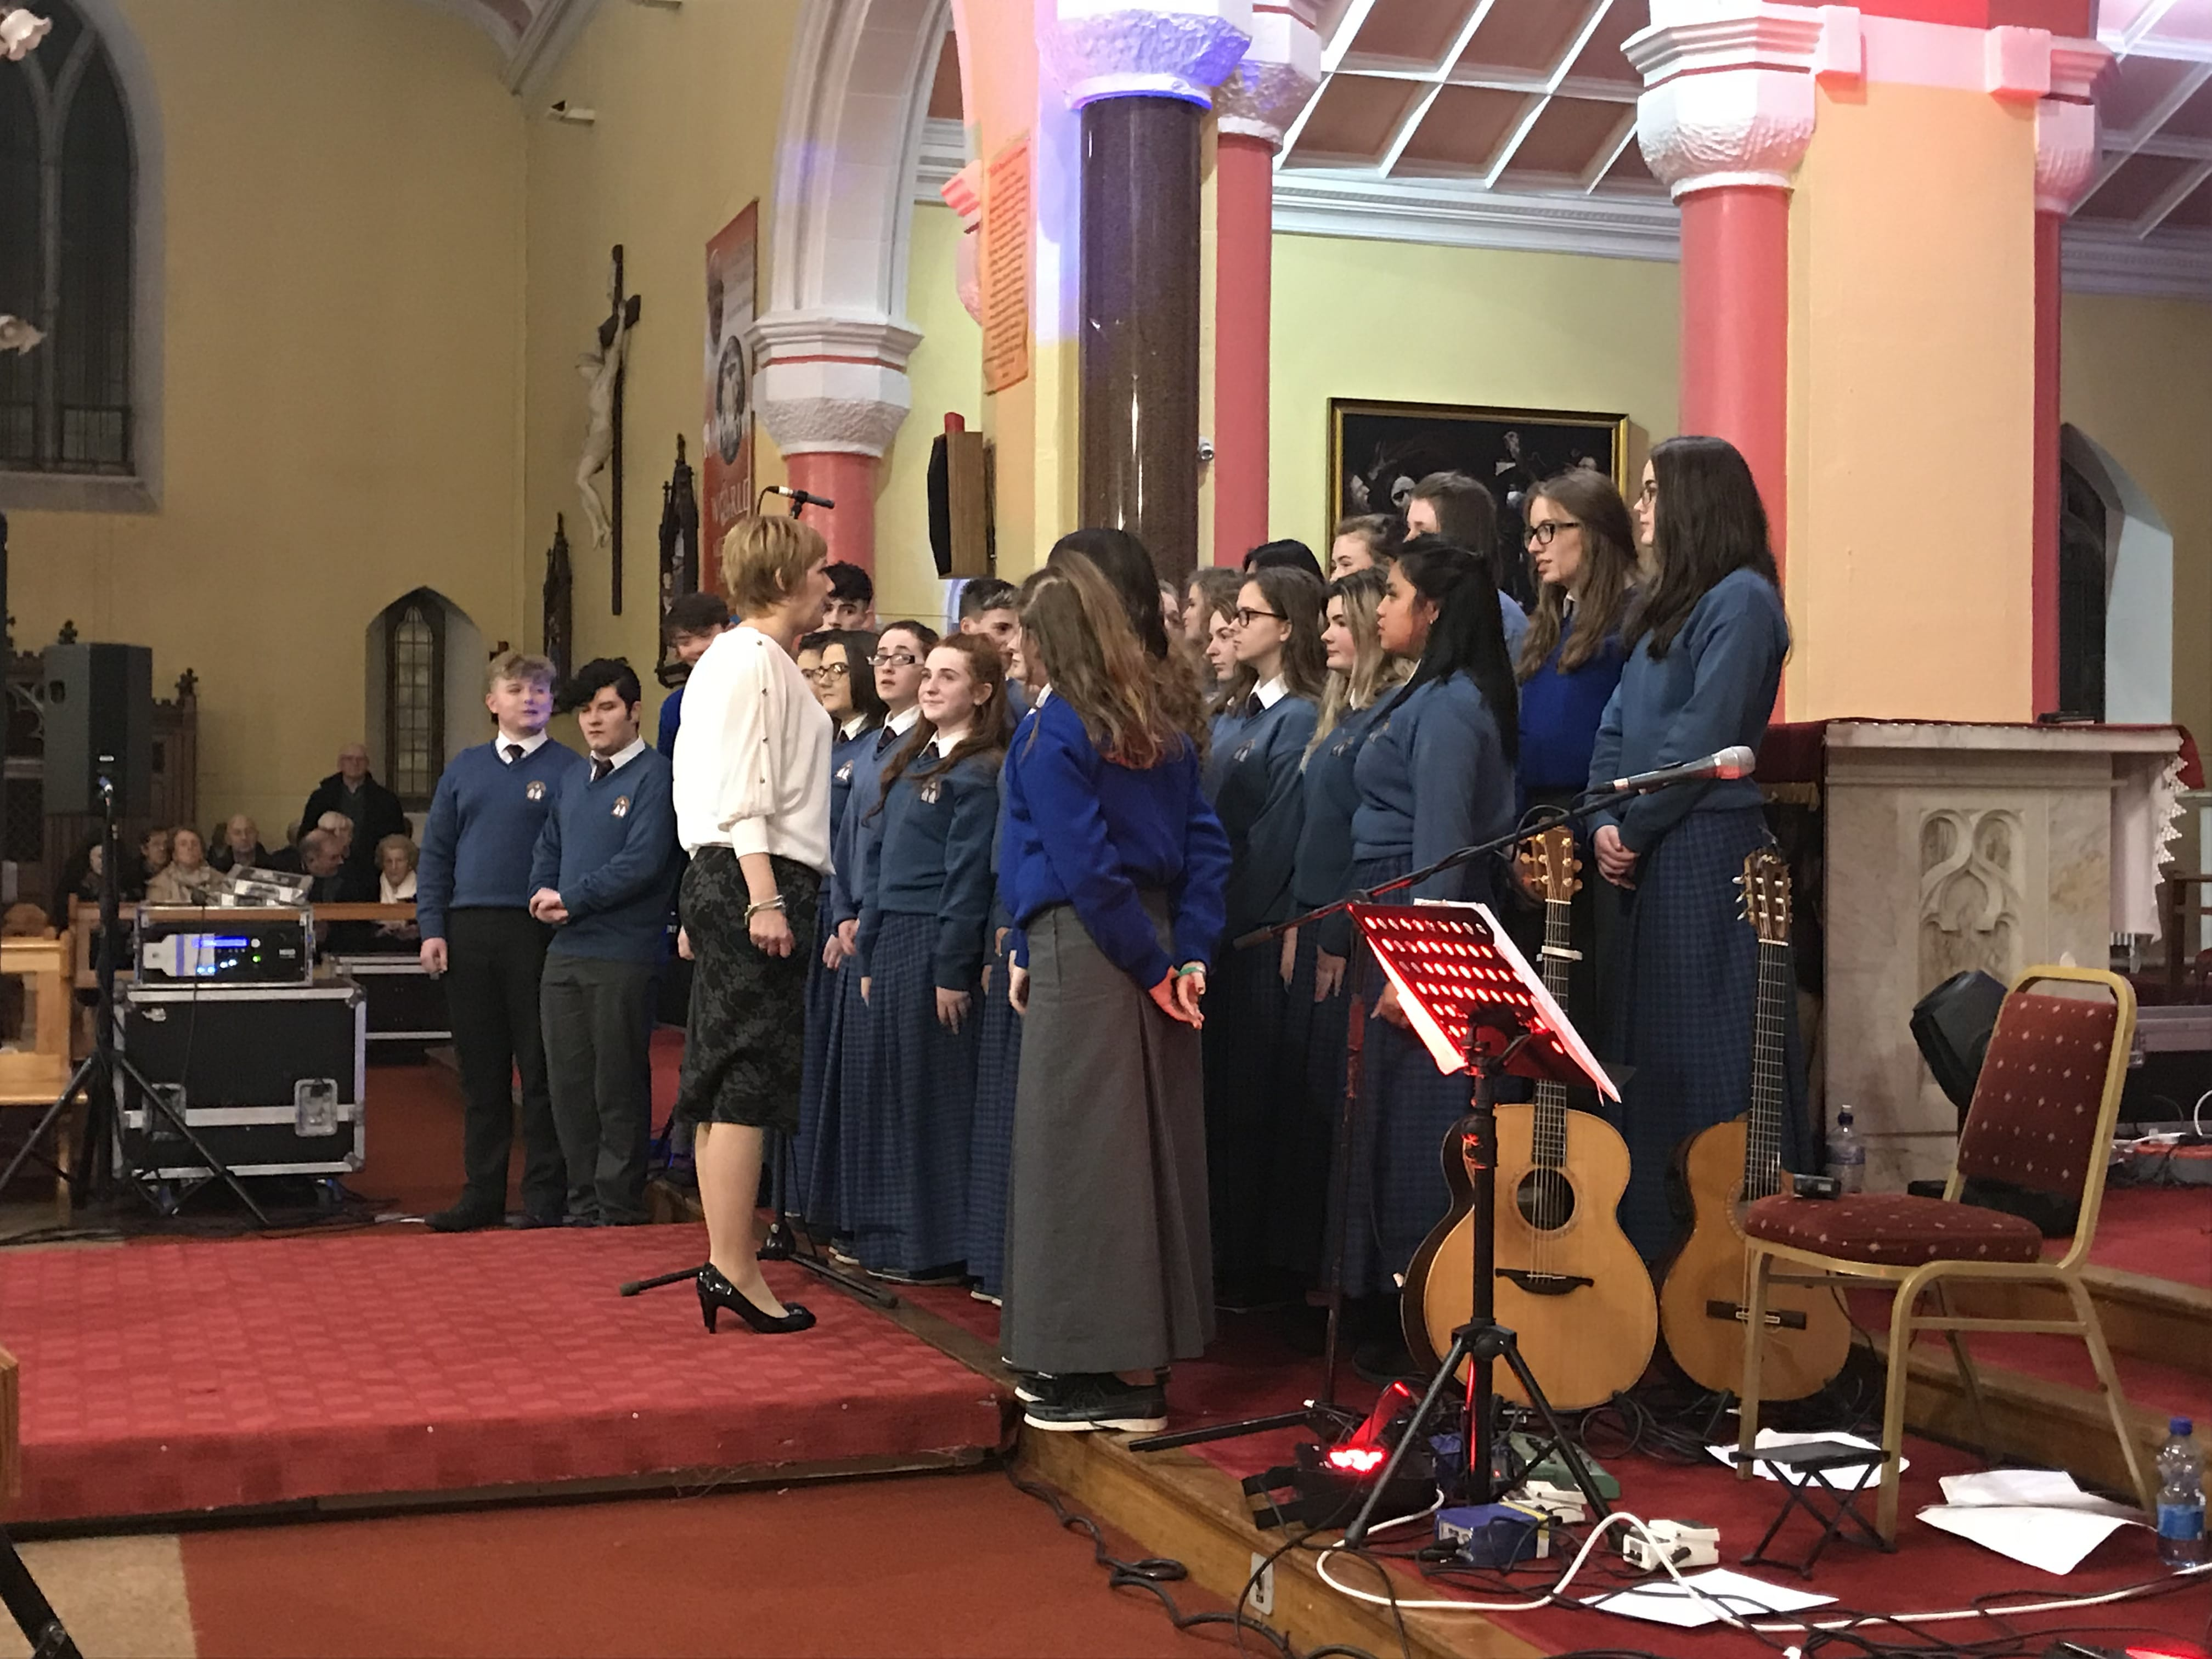 December 2017: Desmond College Choir with teacher Ms Keane  at the Liam Lawton concert